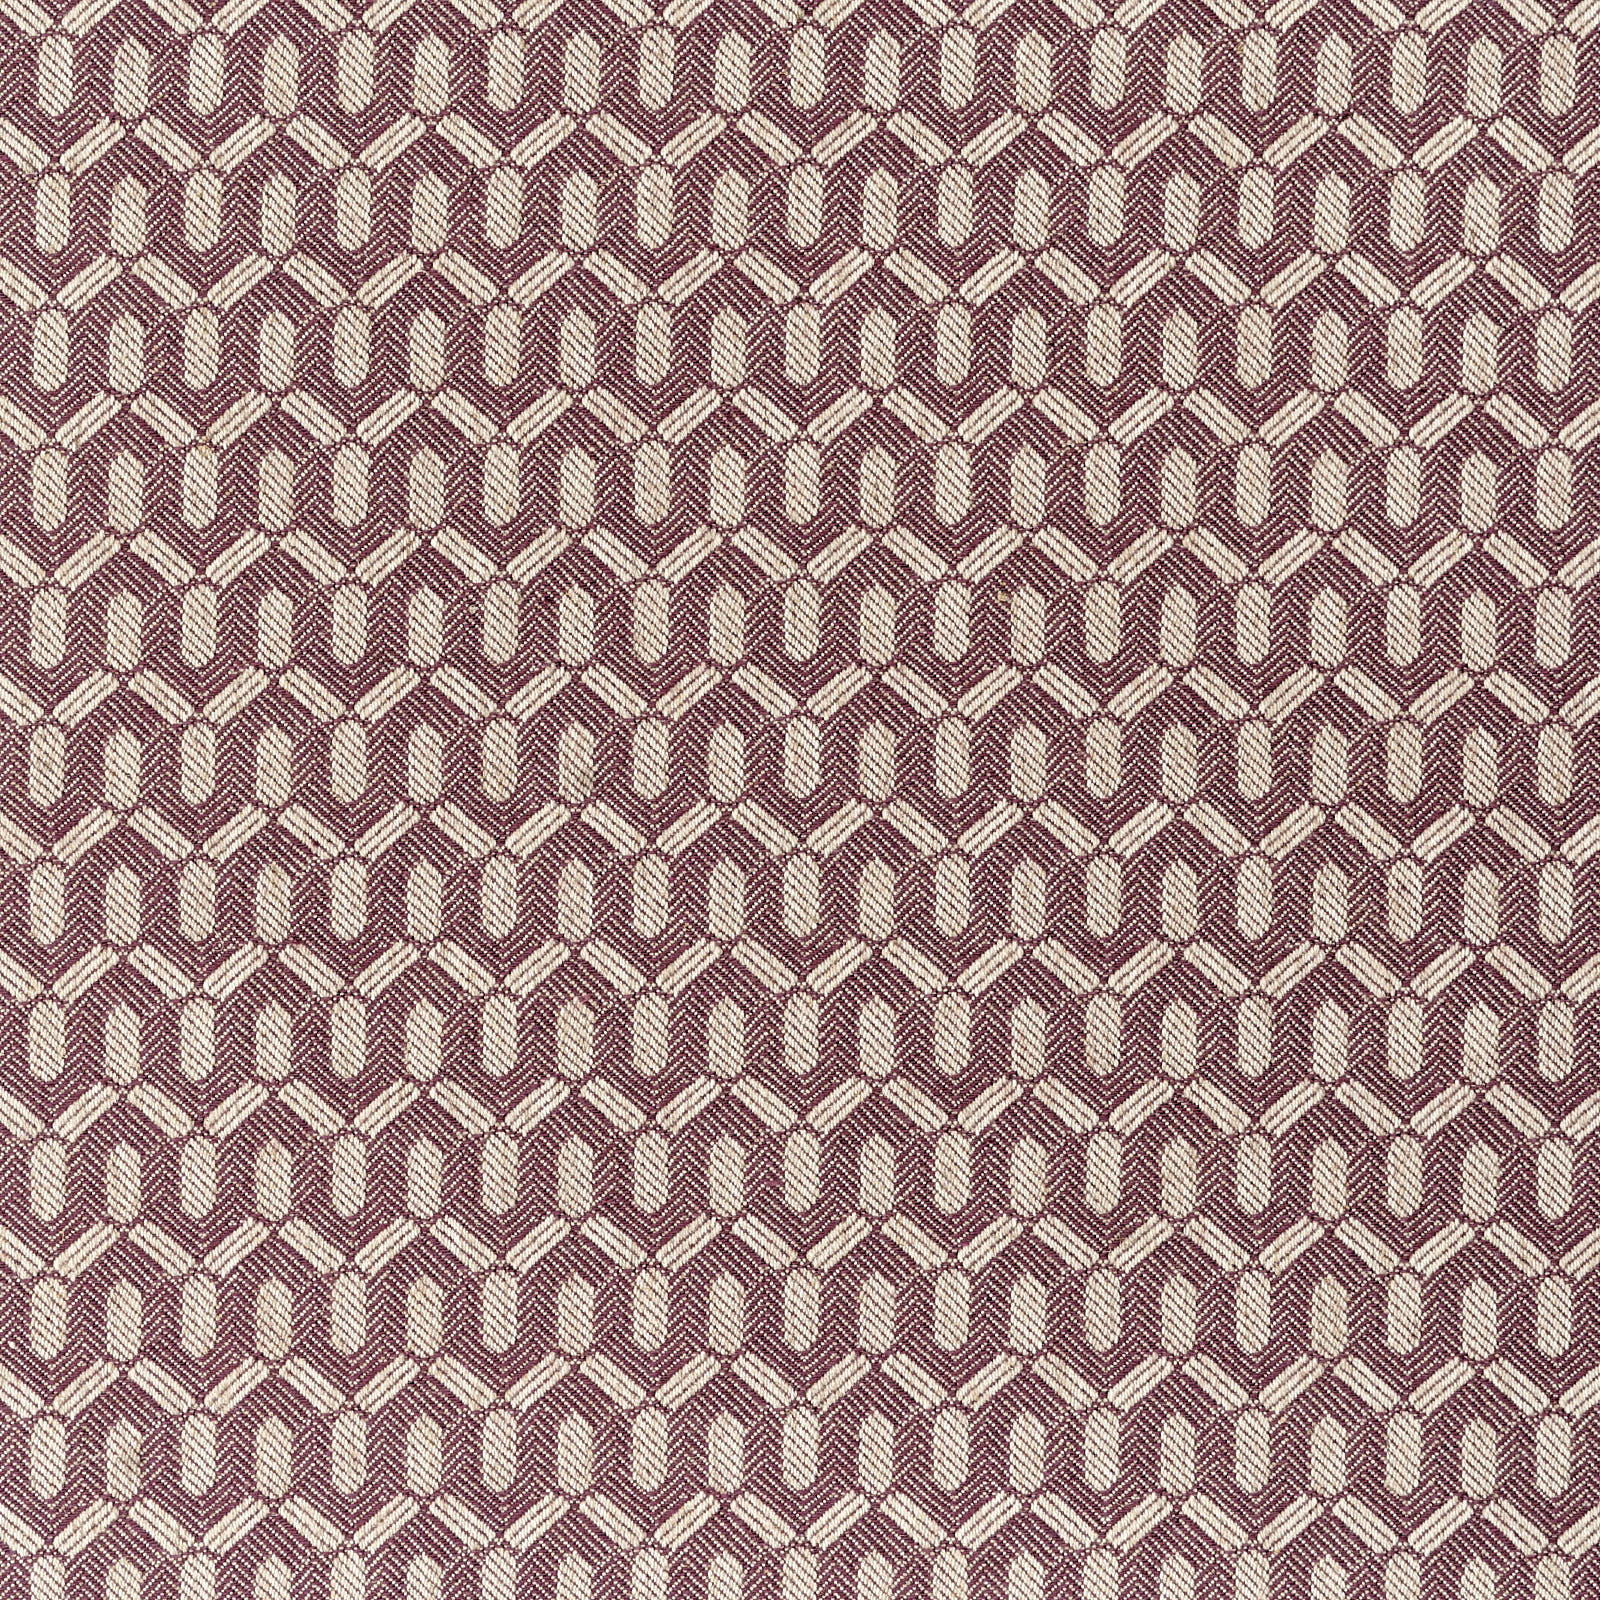 <p><strong>HANOVER</strong>aubergine 1710-04<a href=/the-spencer-collection/hanover-aubergine-1710-04>More →</a></p>